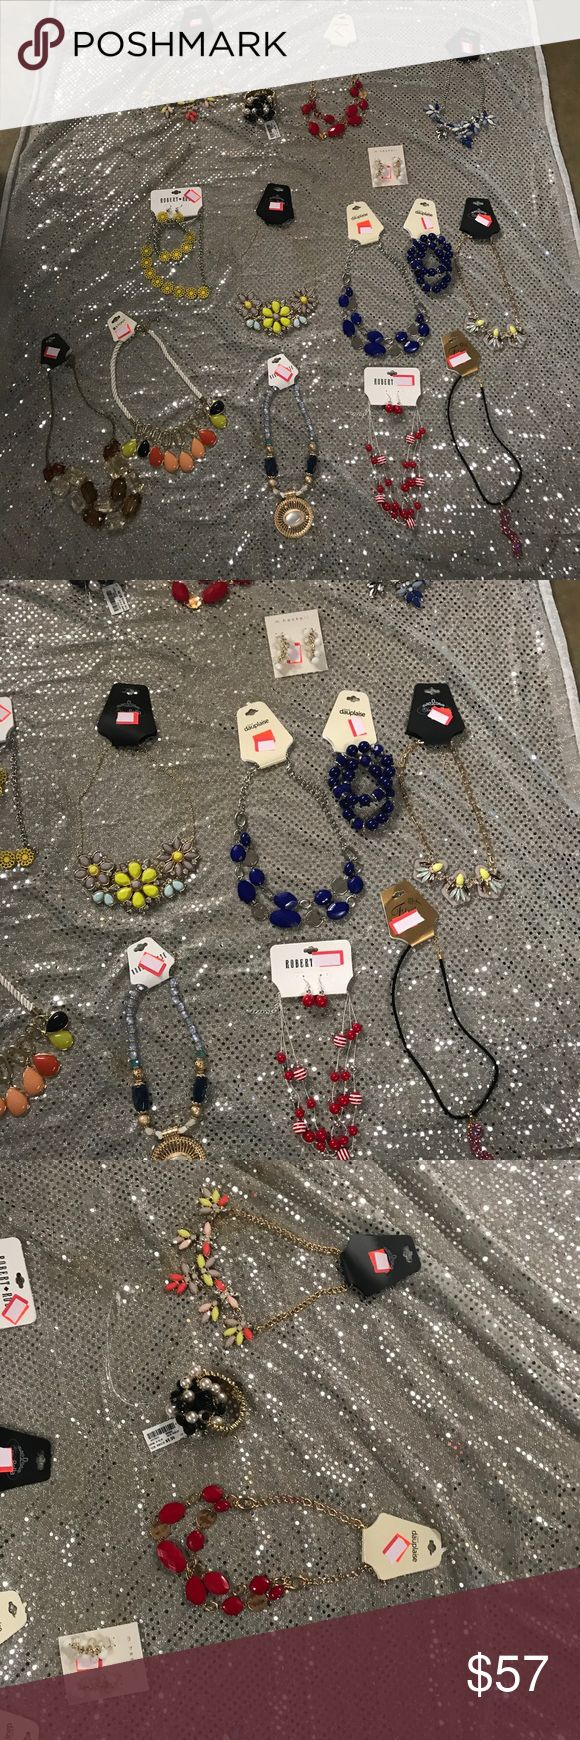 Huge huge new wth tags quality Jewerly lot (20) pc Get this entire lot of quality necklaces n sets most retail from 8-14 each there is over (20) items here that's great 😁 resale money 💰 or great coworker gifts lol or flea market resale items or etsy etc all new wth tags fashion lot Jewelry